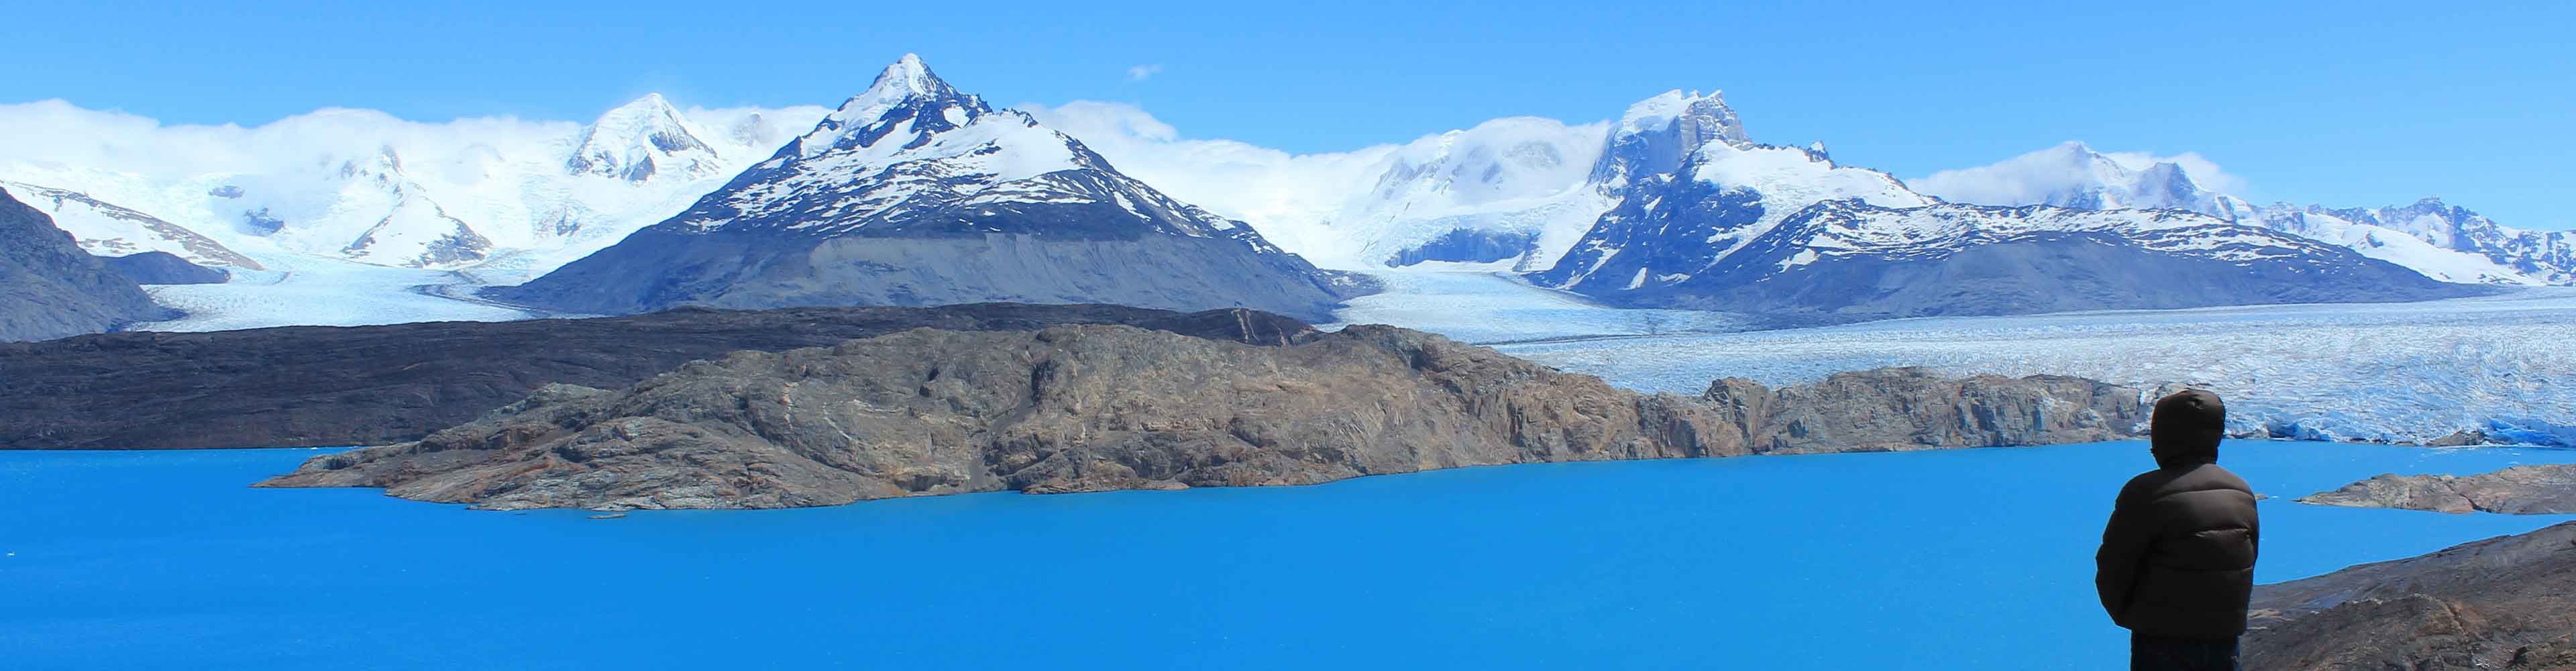 Torres del Paine Experience – Independent